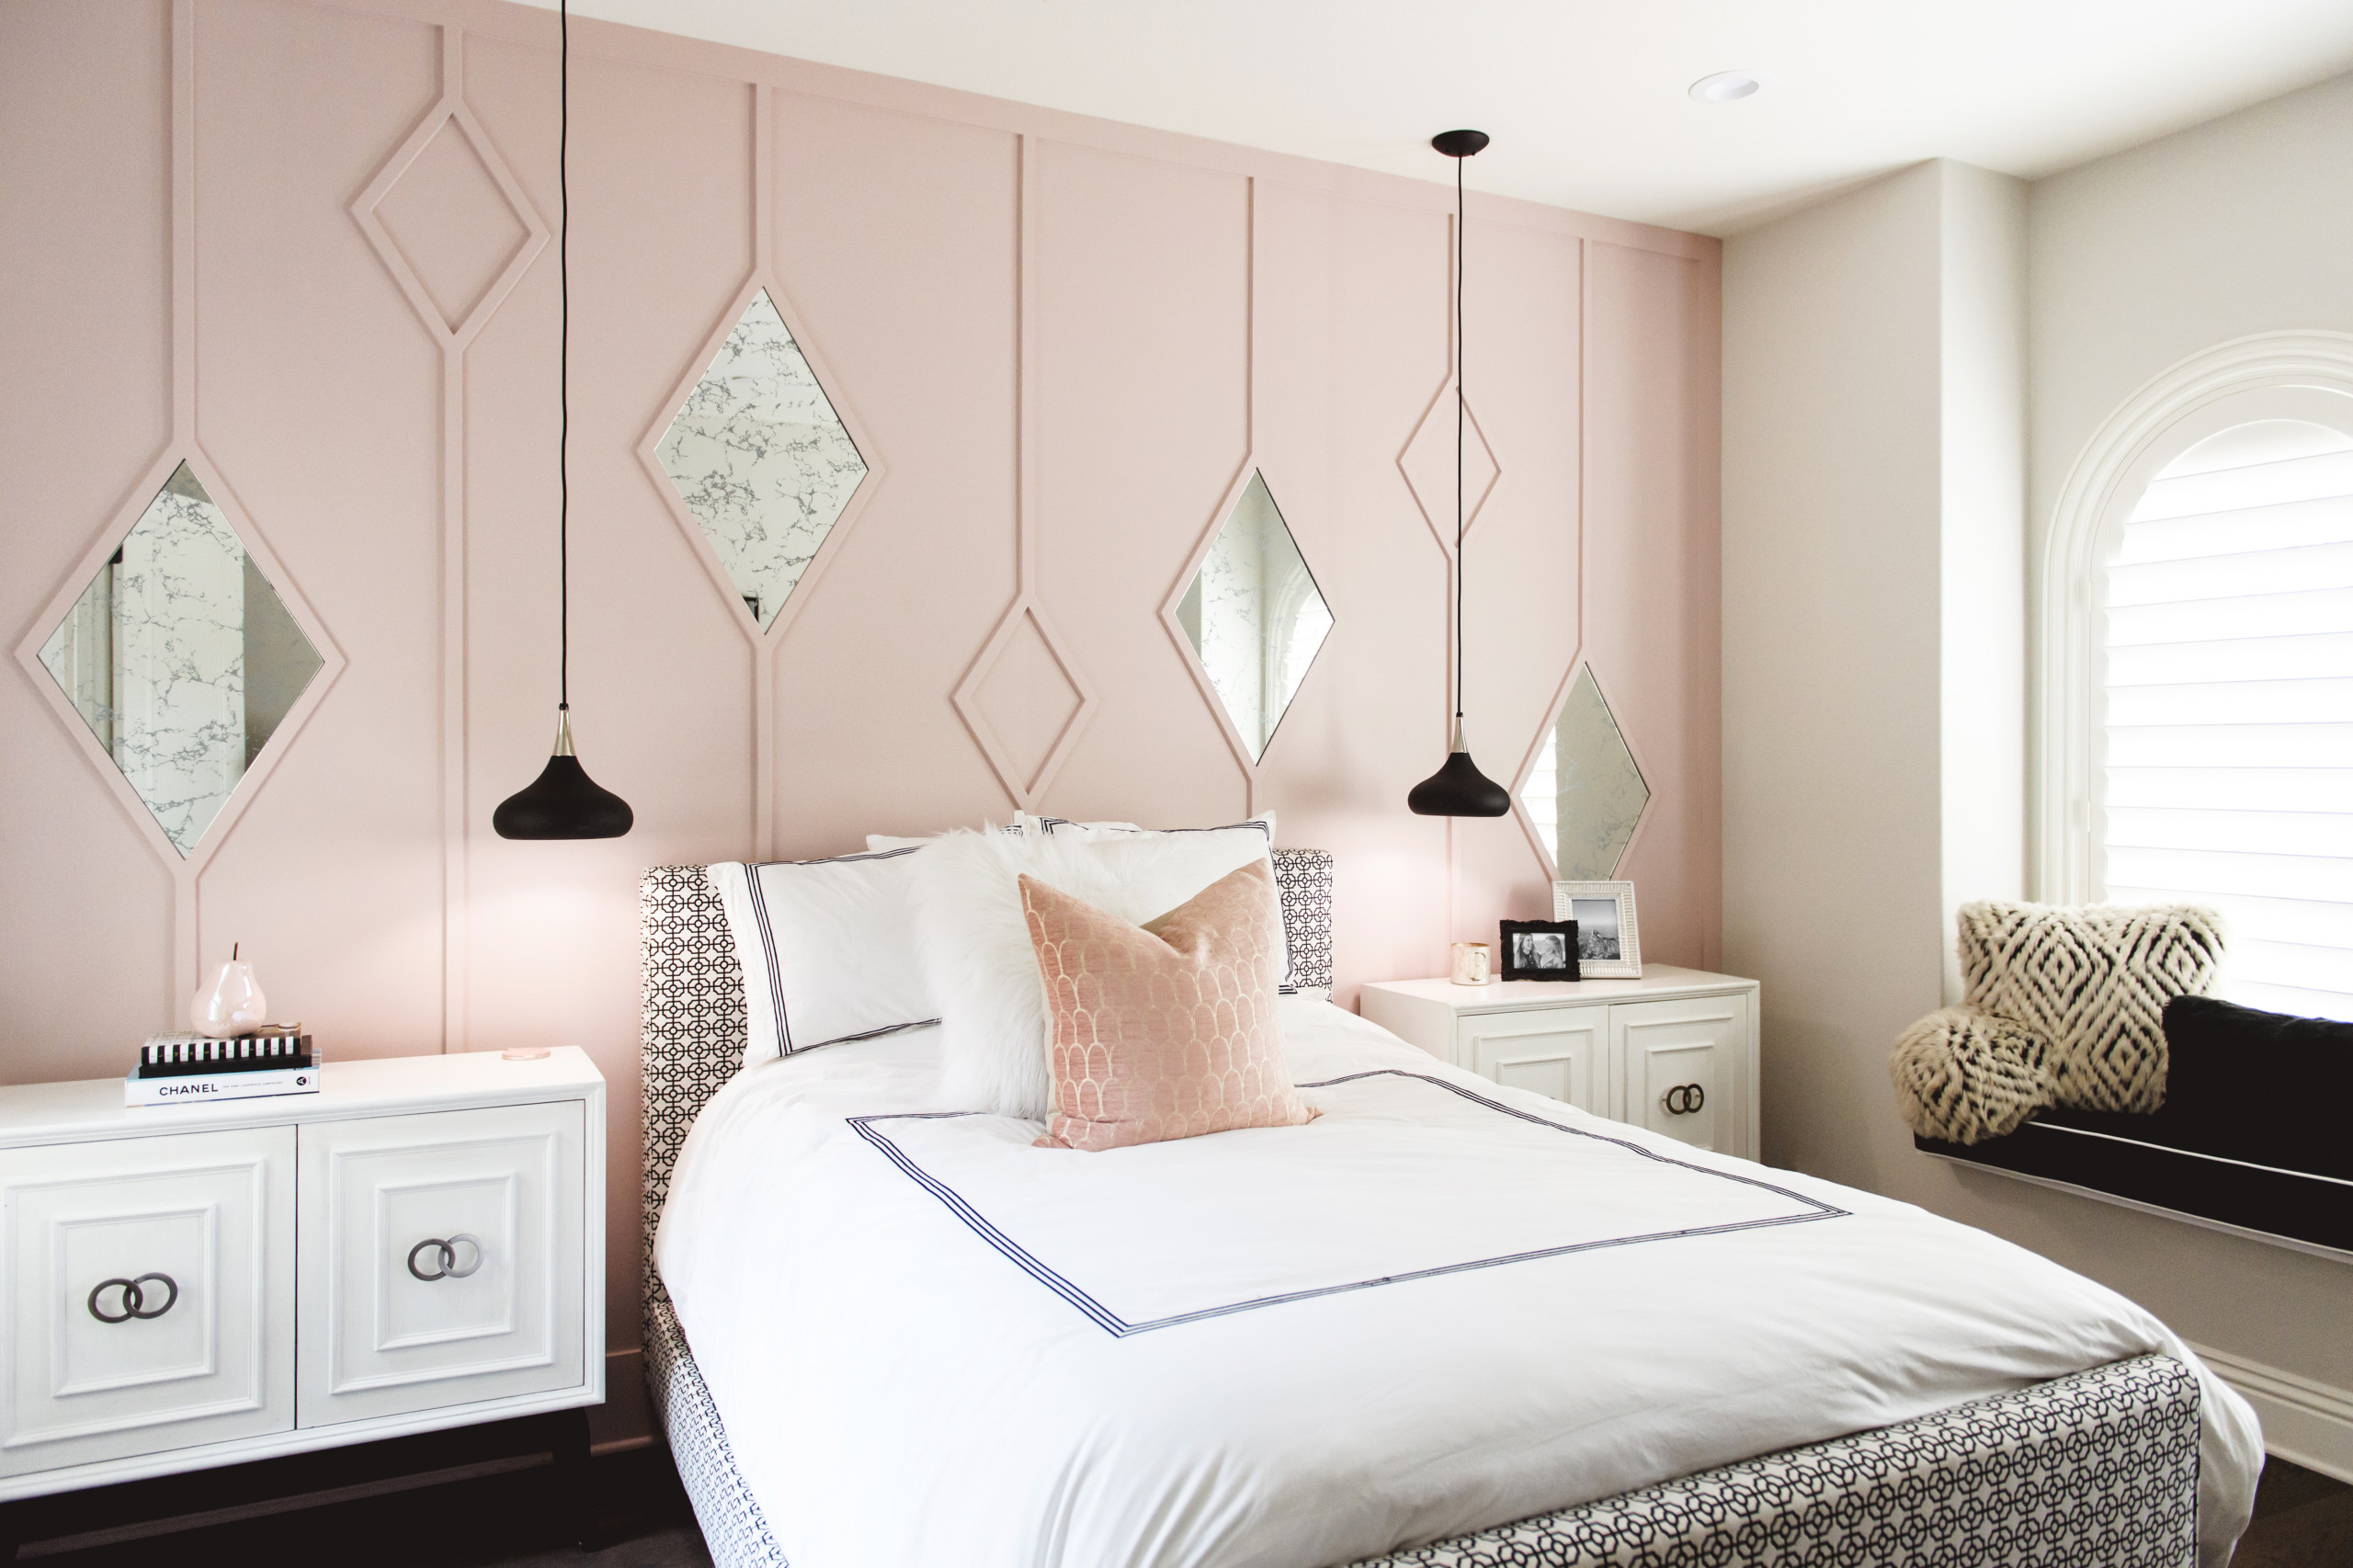 75 Beautiful Wall Paneling Bedroom Pictures Ideas July 2021 Houzz